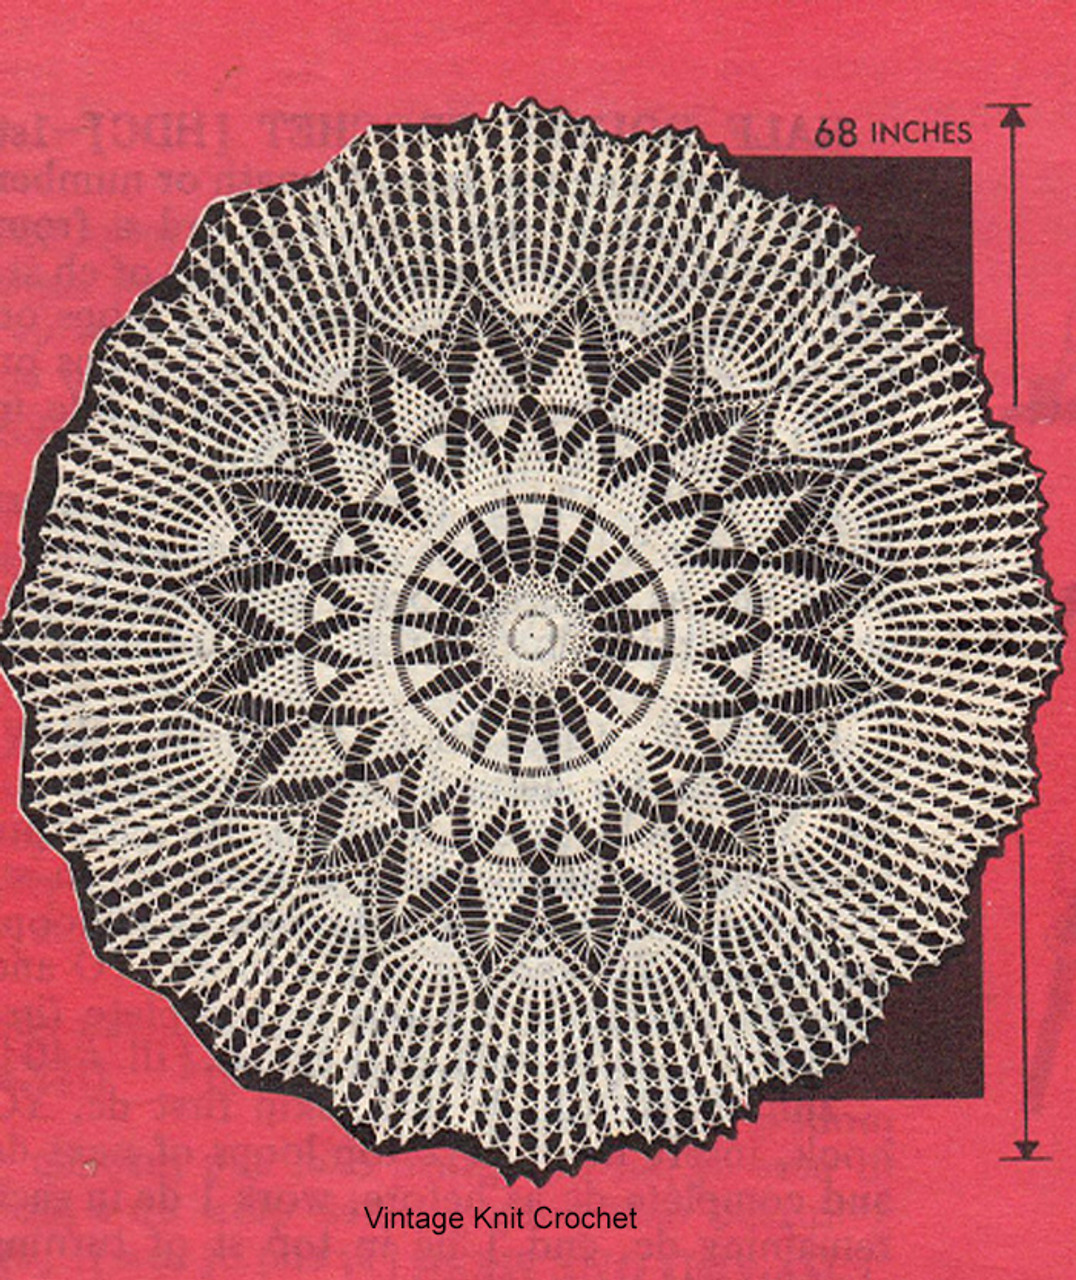 Mail Order Crochet Tablecloth Pattern, Pineapples, Design 7589